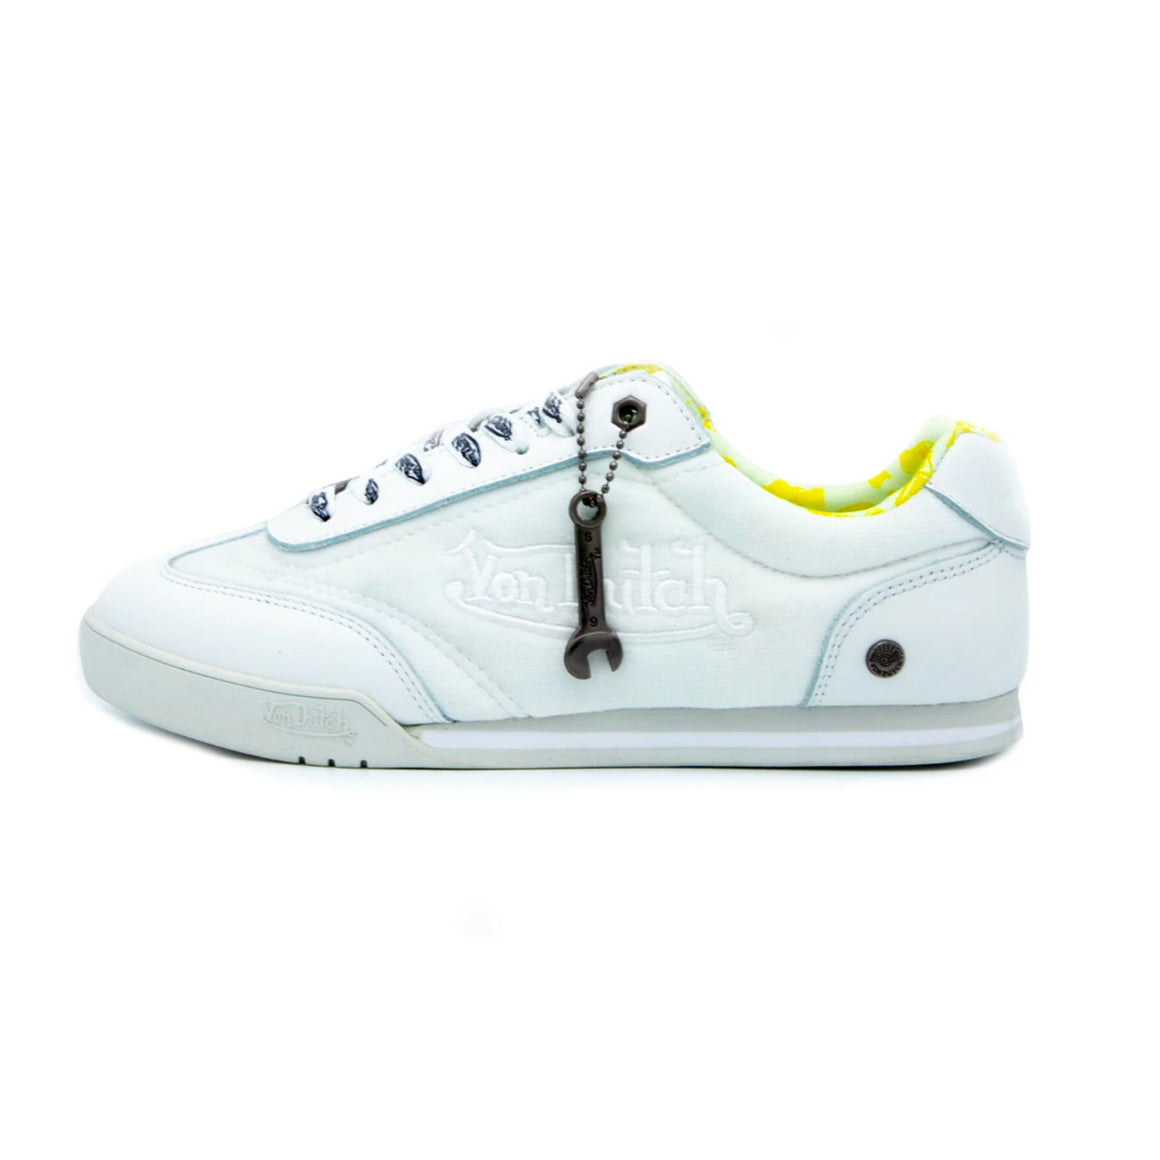 Women's Vanderdutch velvet White Snow